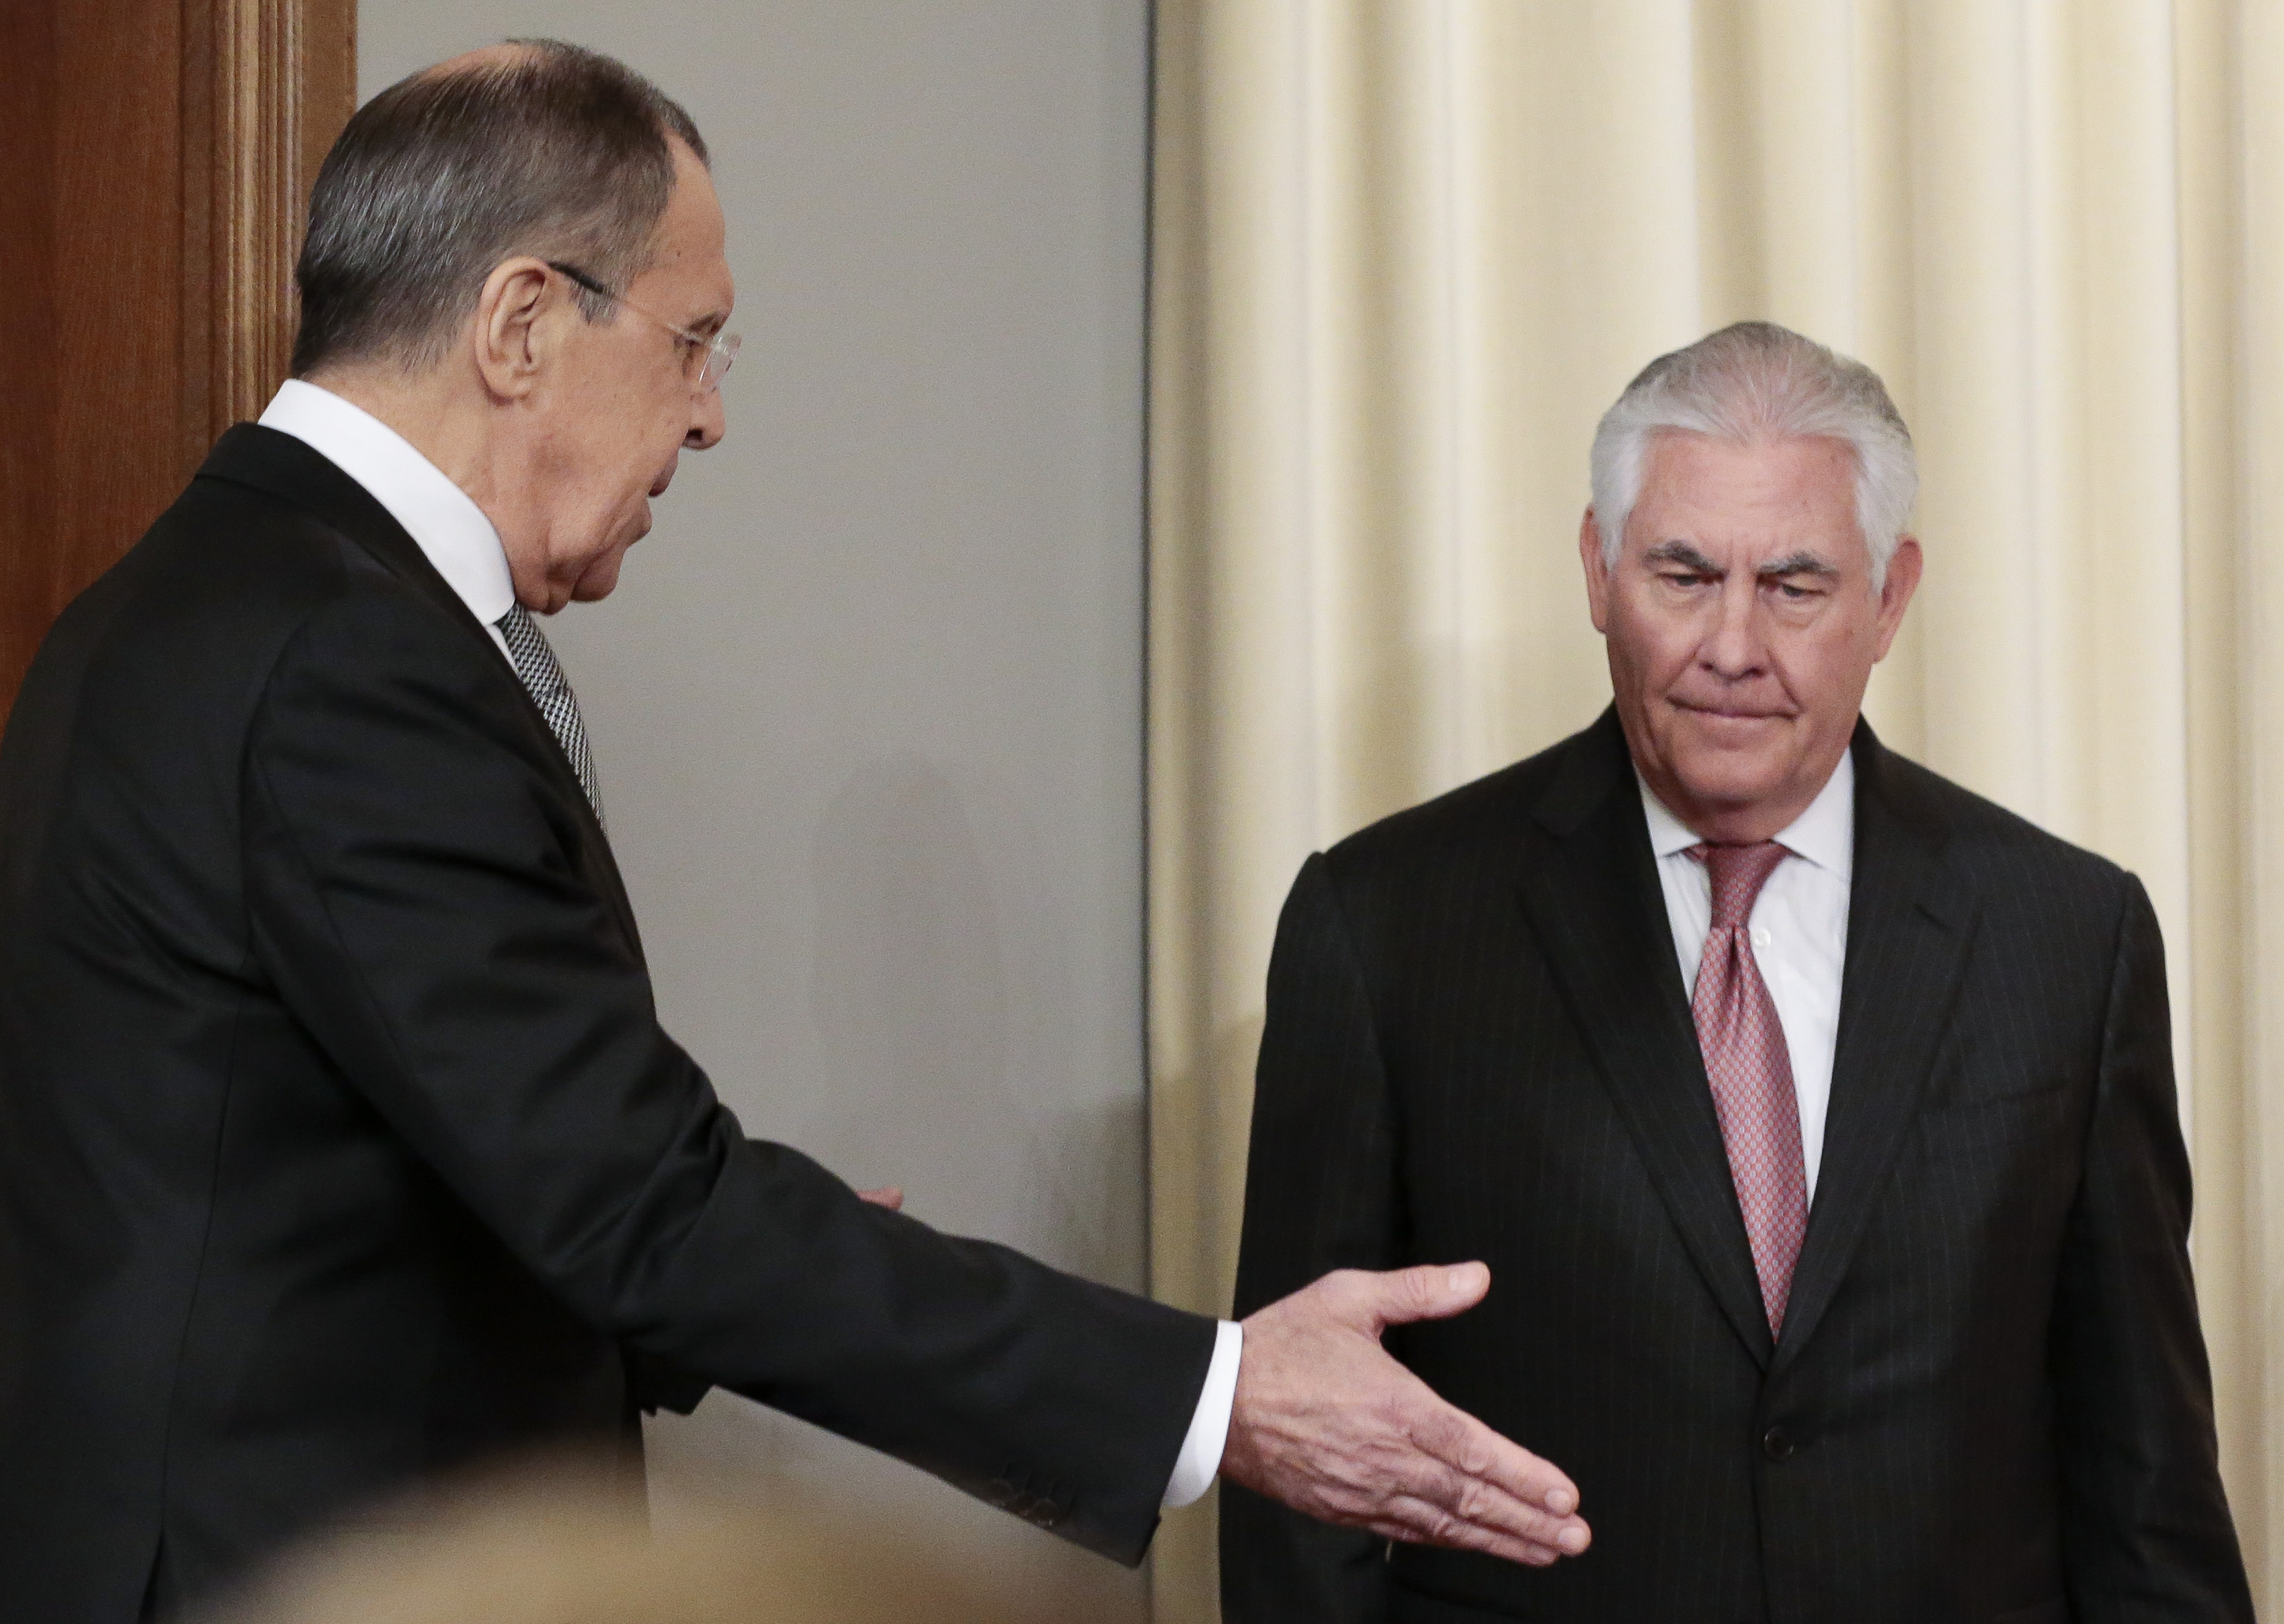 Russian Foreign Minister Sergey Lavrov, left, welcomes US Secretary of State Rex Tillerson to attend a news conference following their talks in Moscow, Russia, Wednesday, April 12, 2017. Amid a fierce dispute over Syria, the United States and Russia agreed Wednesday to work together on an international investigation of a Syrian chemical weapons attack last week. (AP Photo/Ivan Sekretarev)